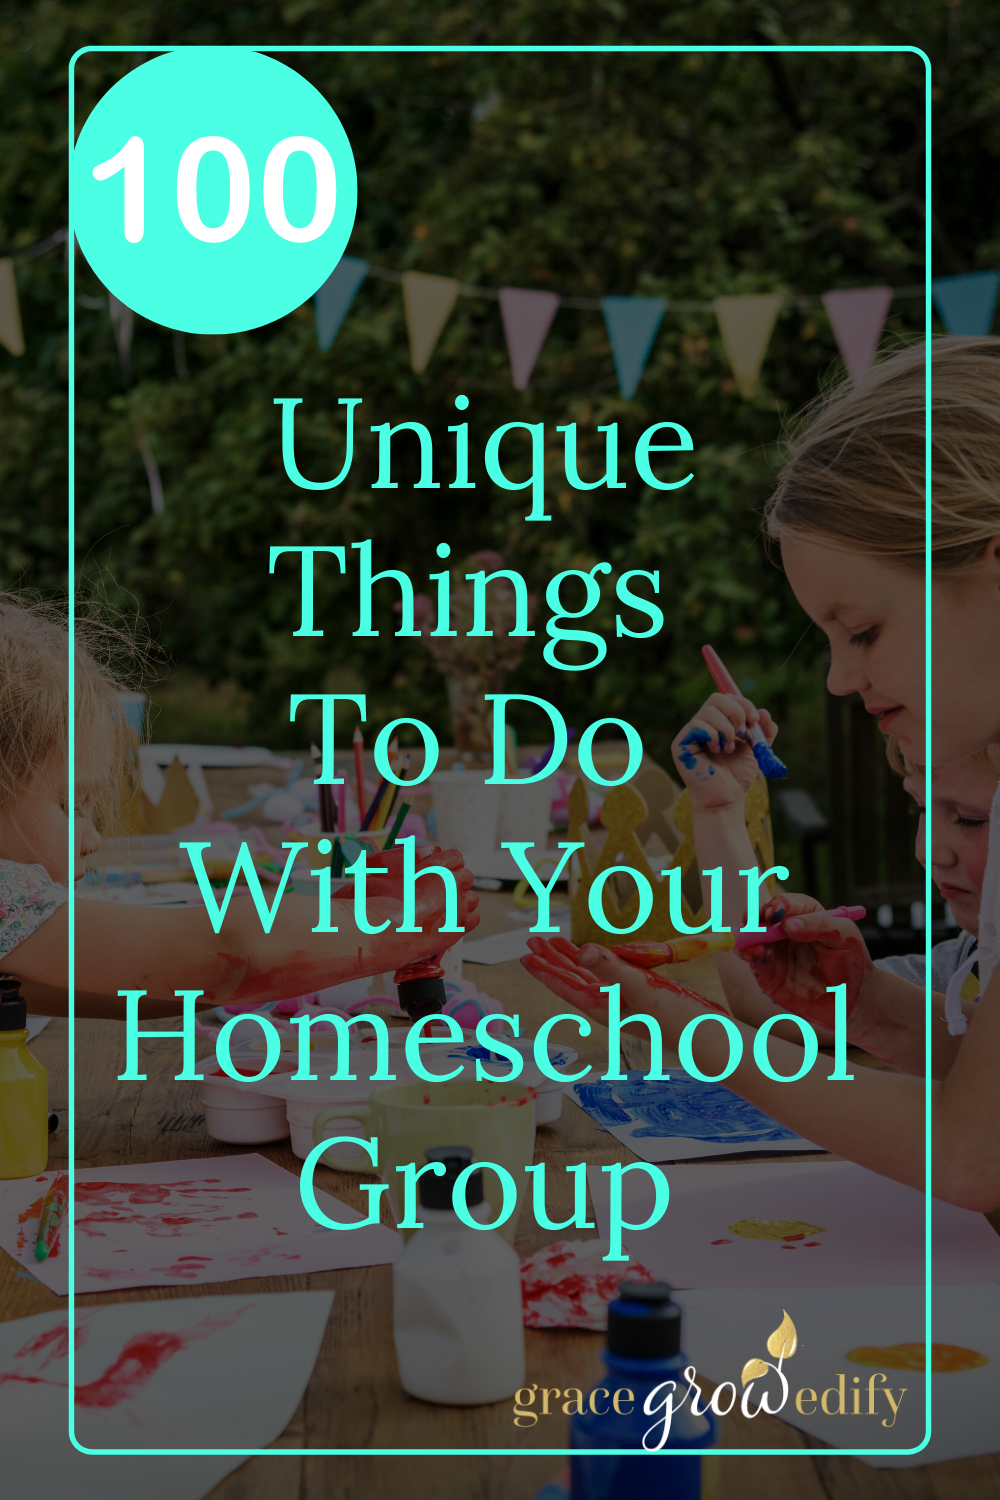 Homeschool Group Activities